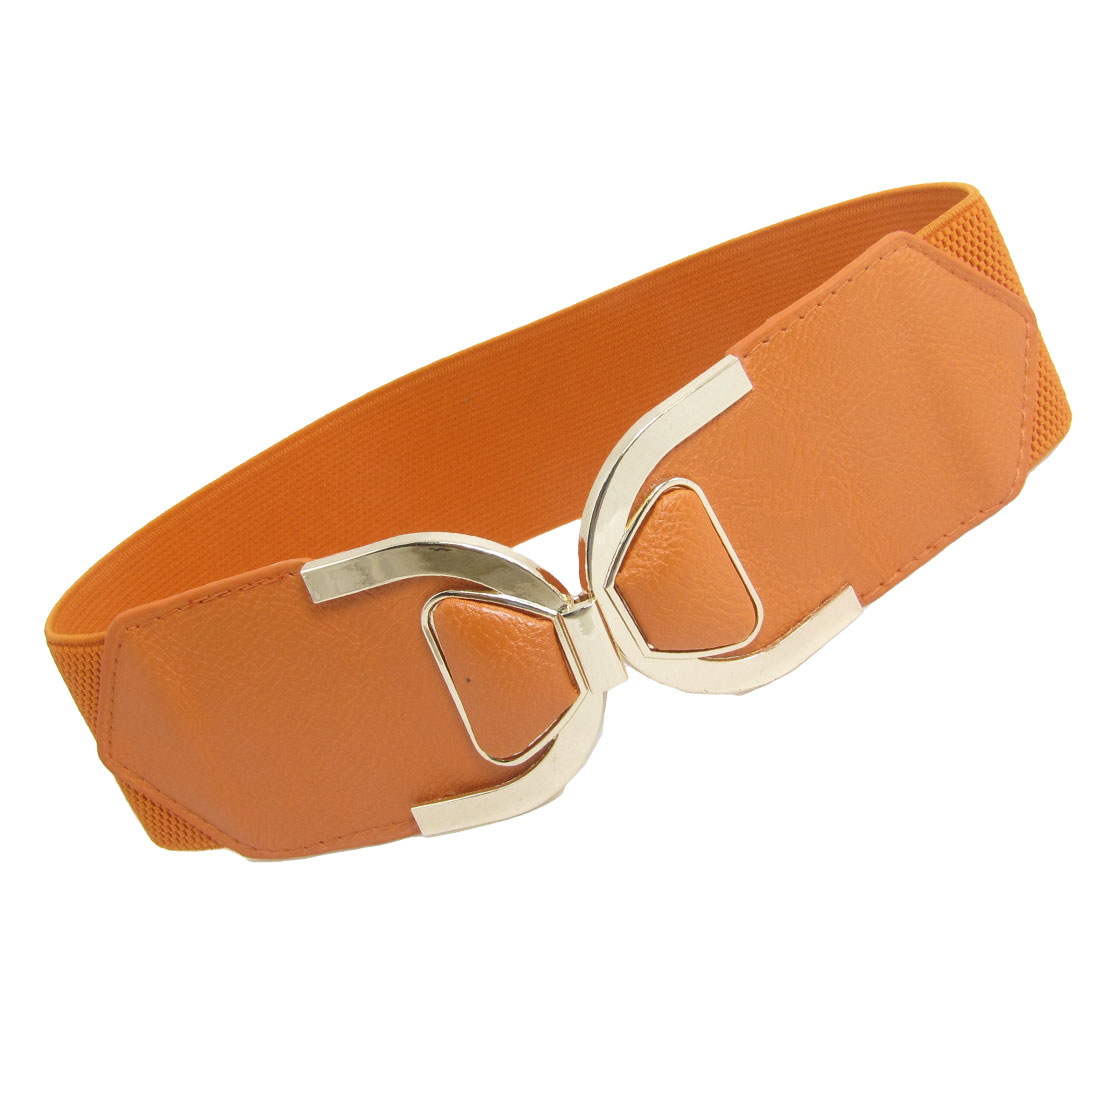 Interlock Buckle Orange Faux Leather Ends Cinch Belt for Women